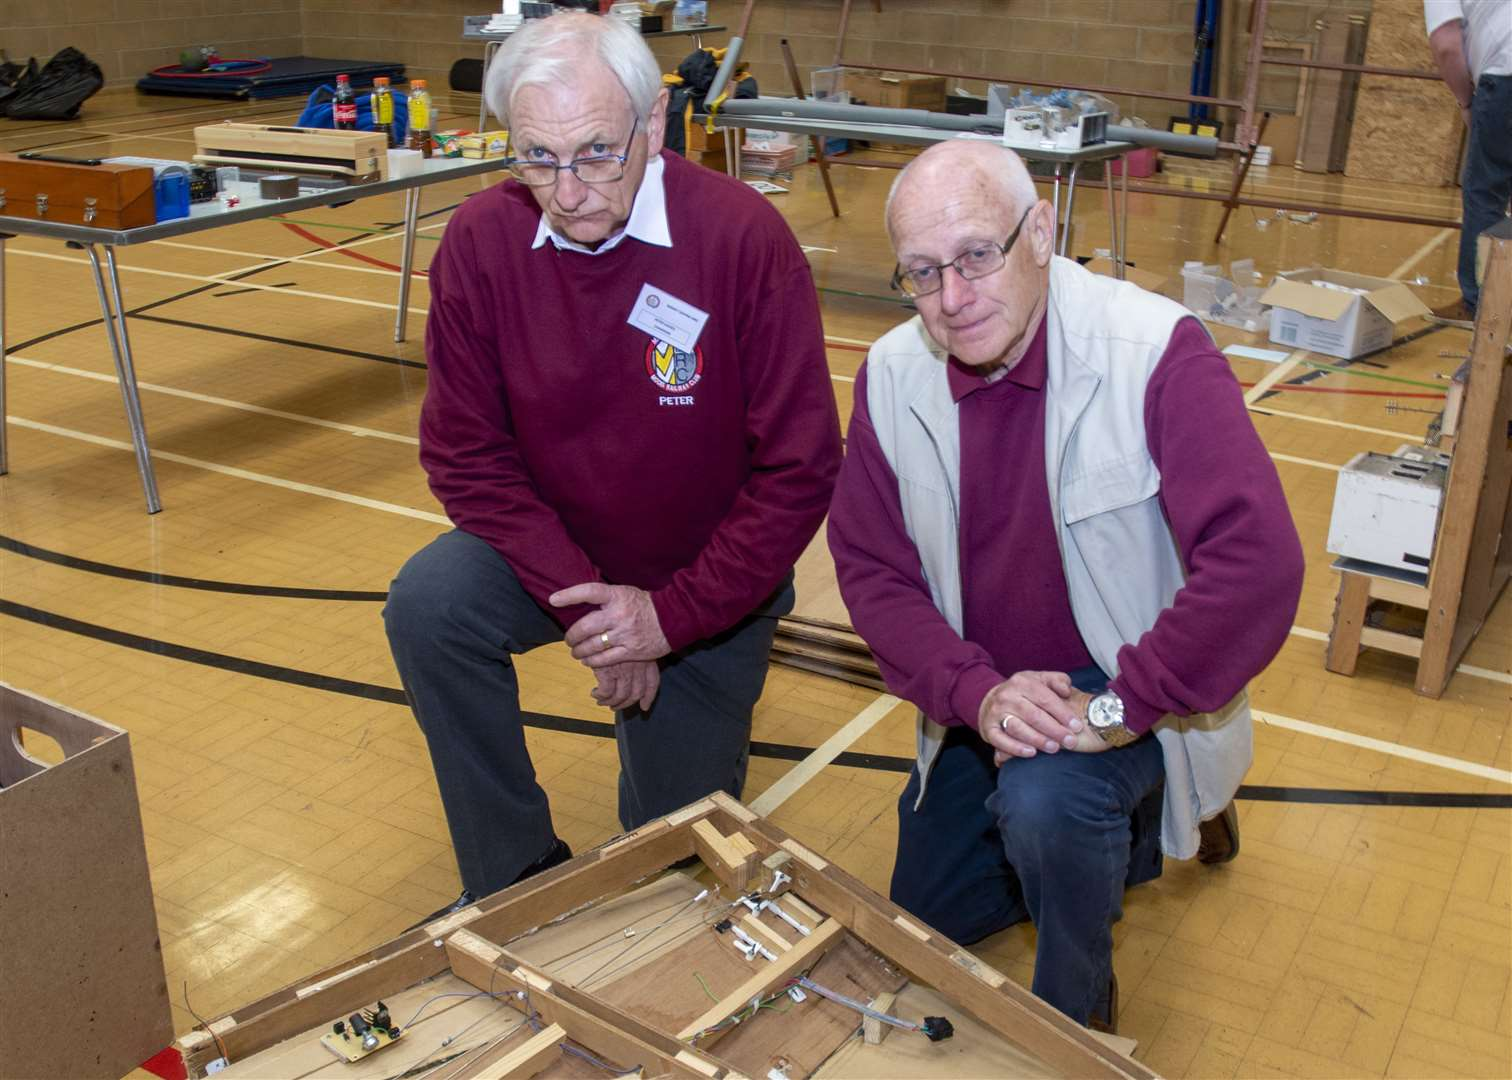 Peter Davies and Bill Sowerby from Market Deeping Model Railway Club (10594318)